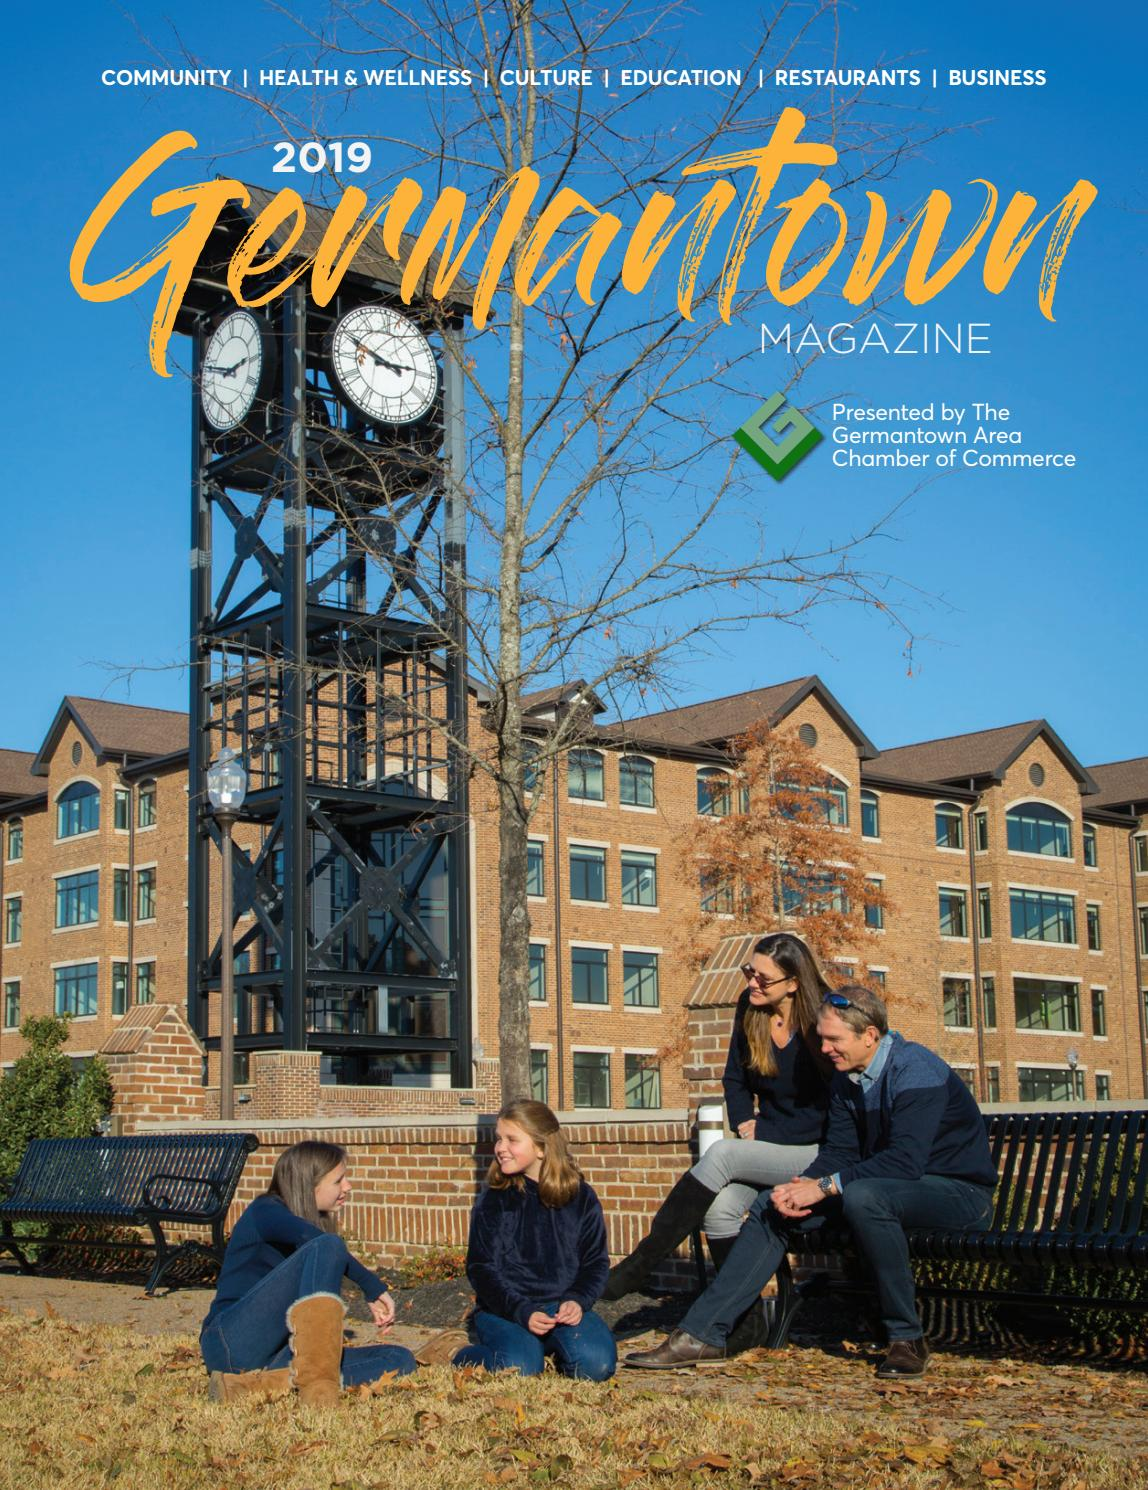 2019 Germantown Area Chamber of Commerce Magazine by SnagMob